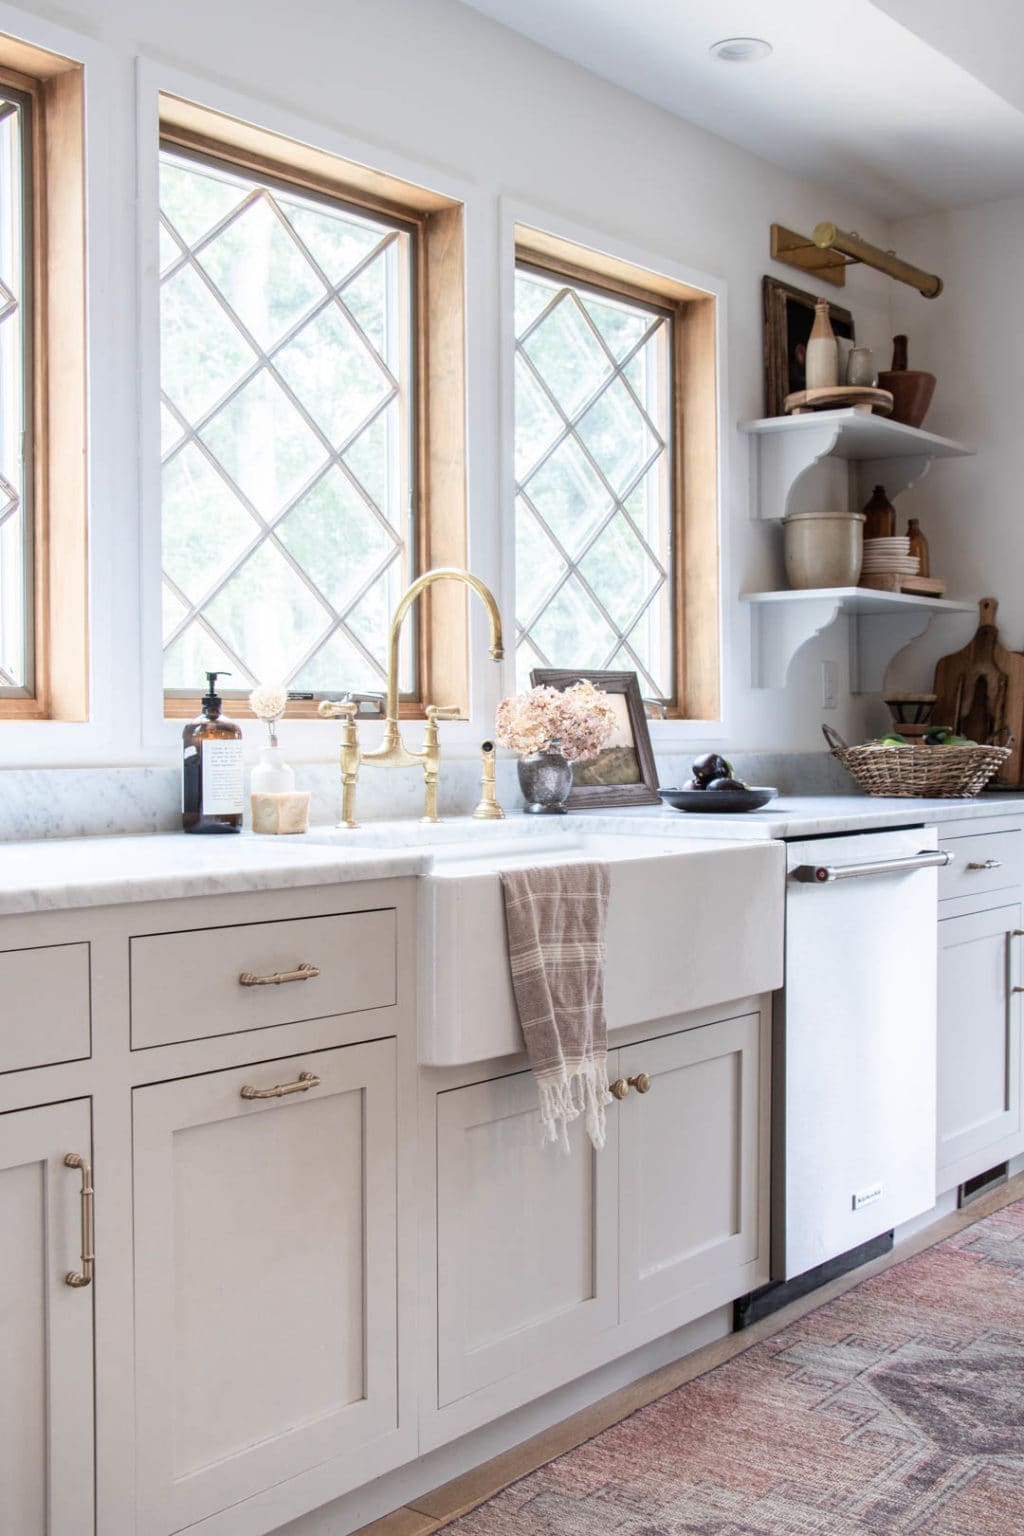 An apron sink with neutral cabinets and diamond pane windows.